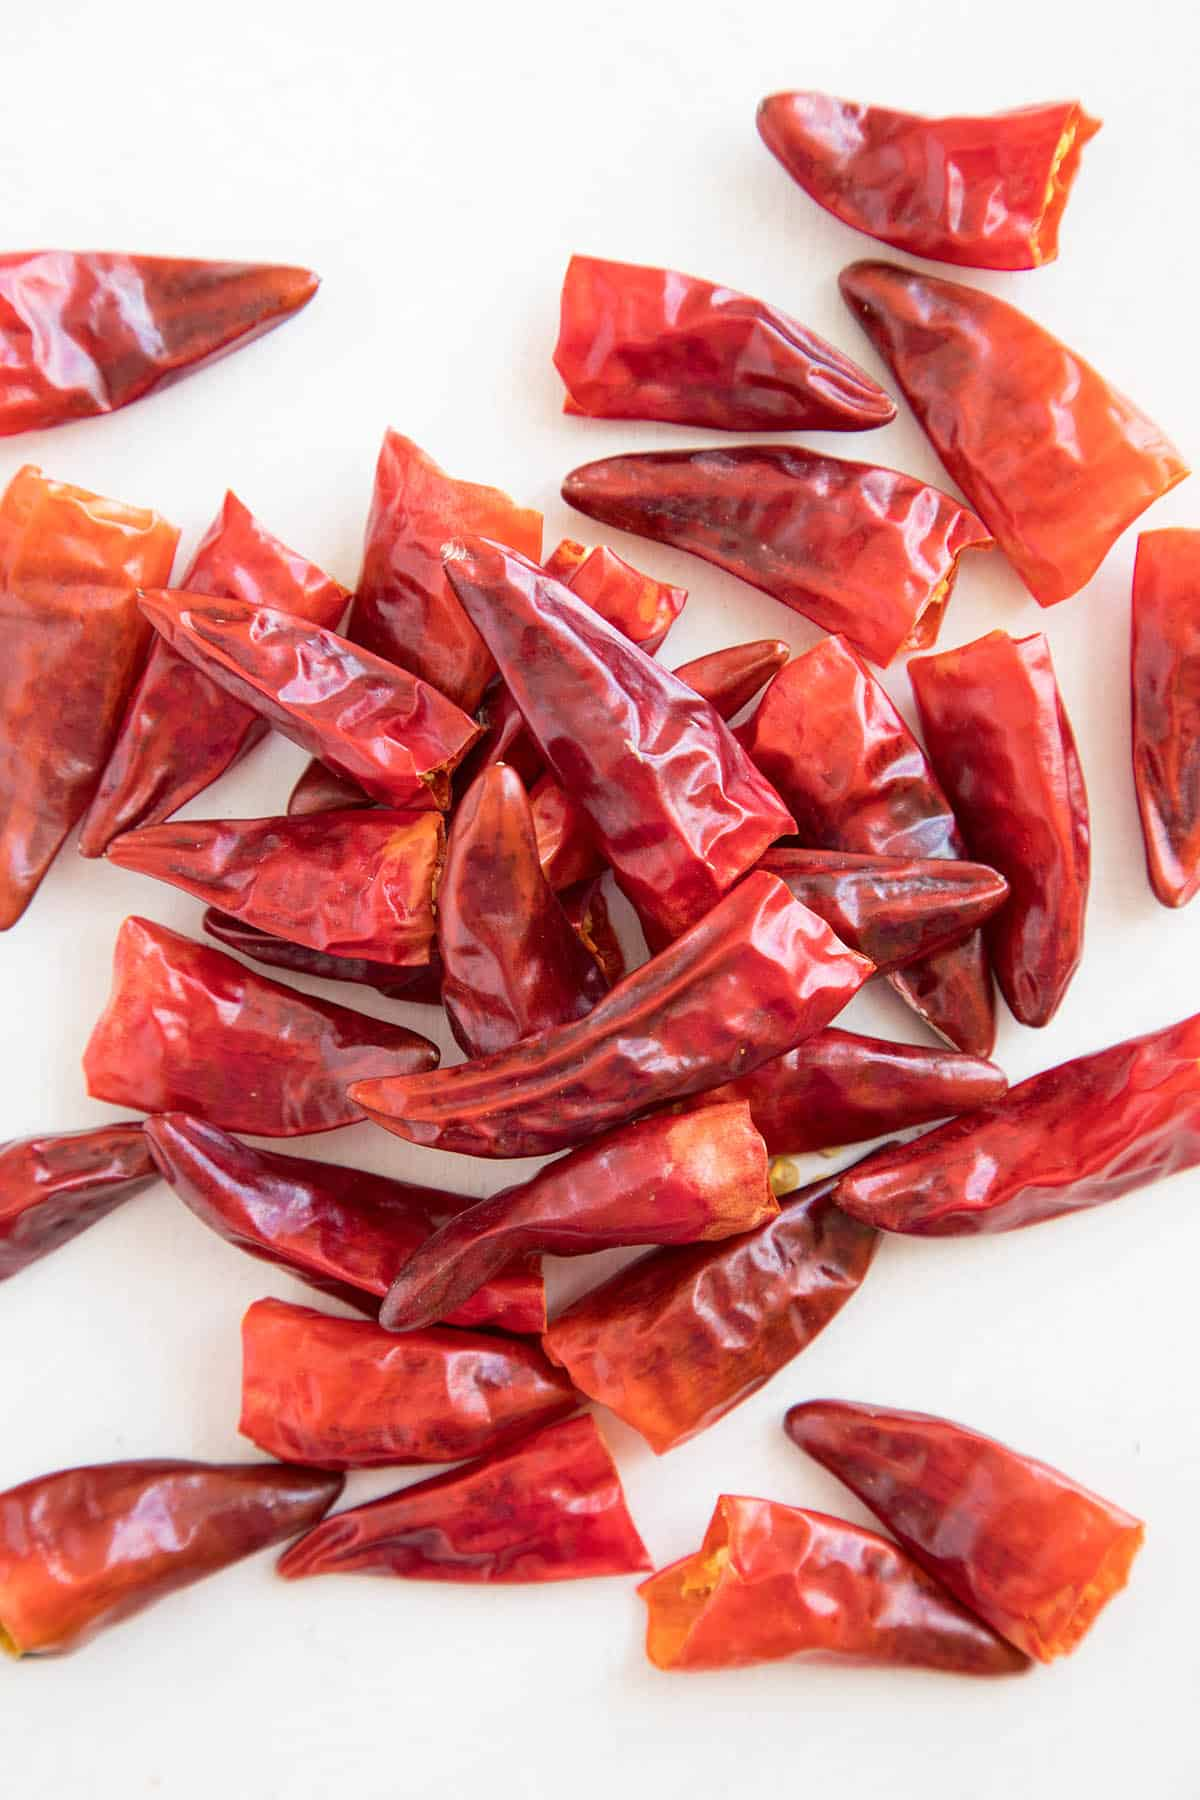 Hawaiian Sweet Hot Chili Peppers - Dried Pods